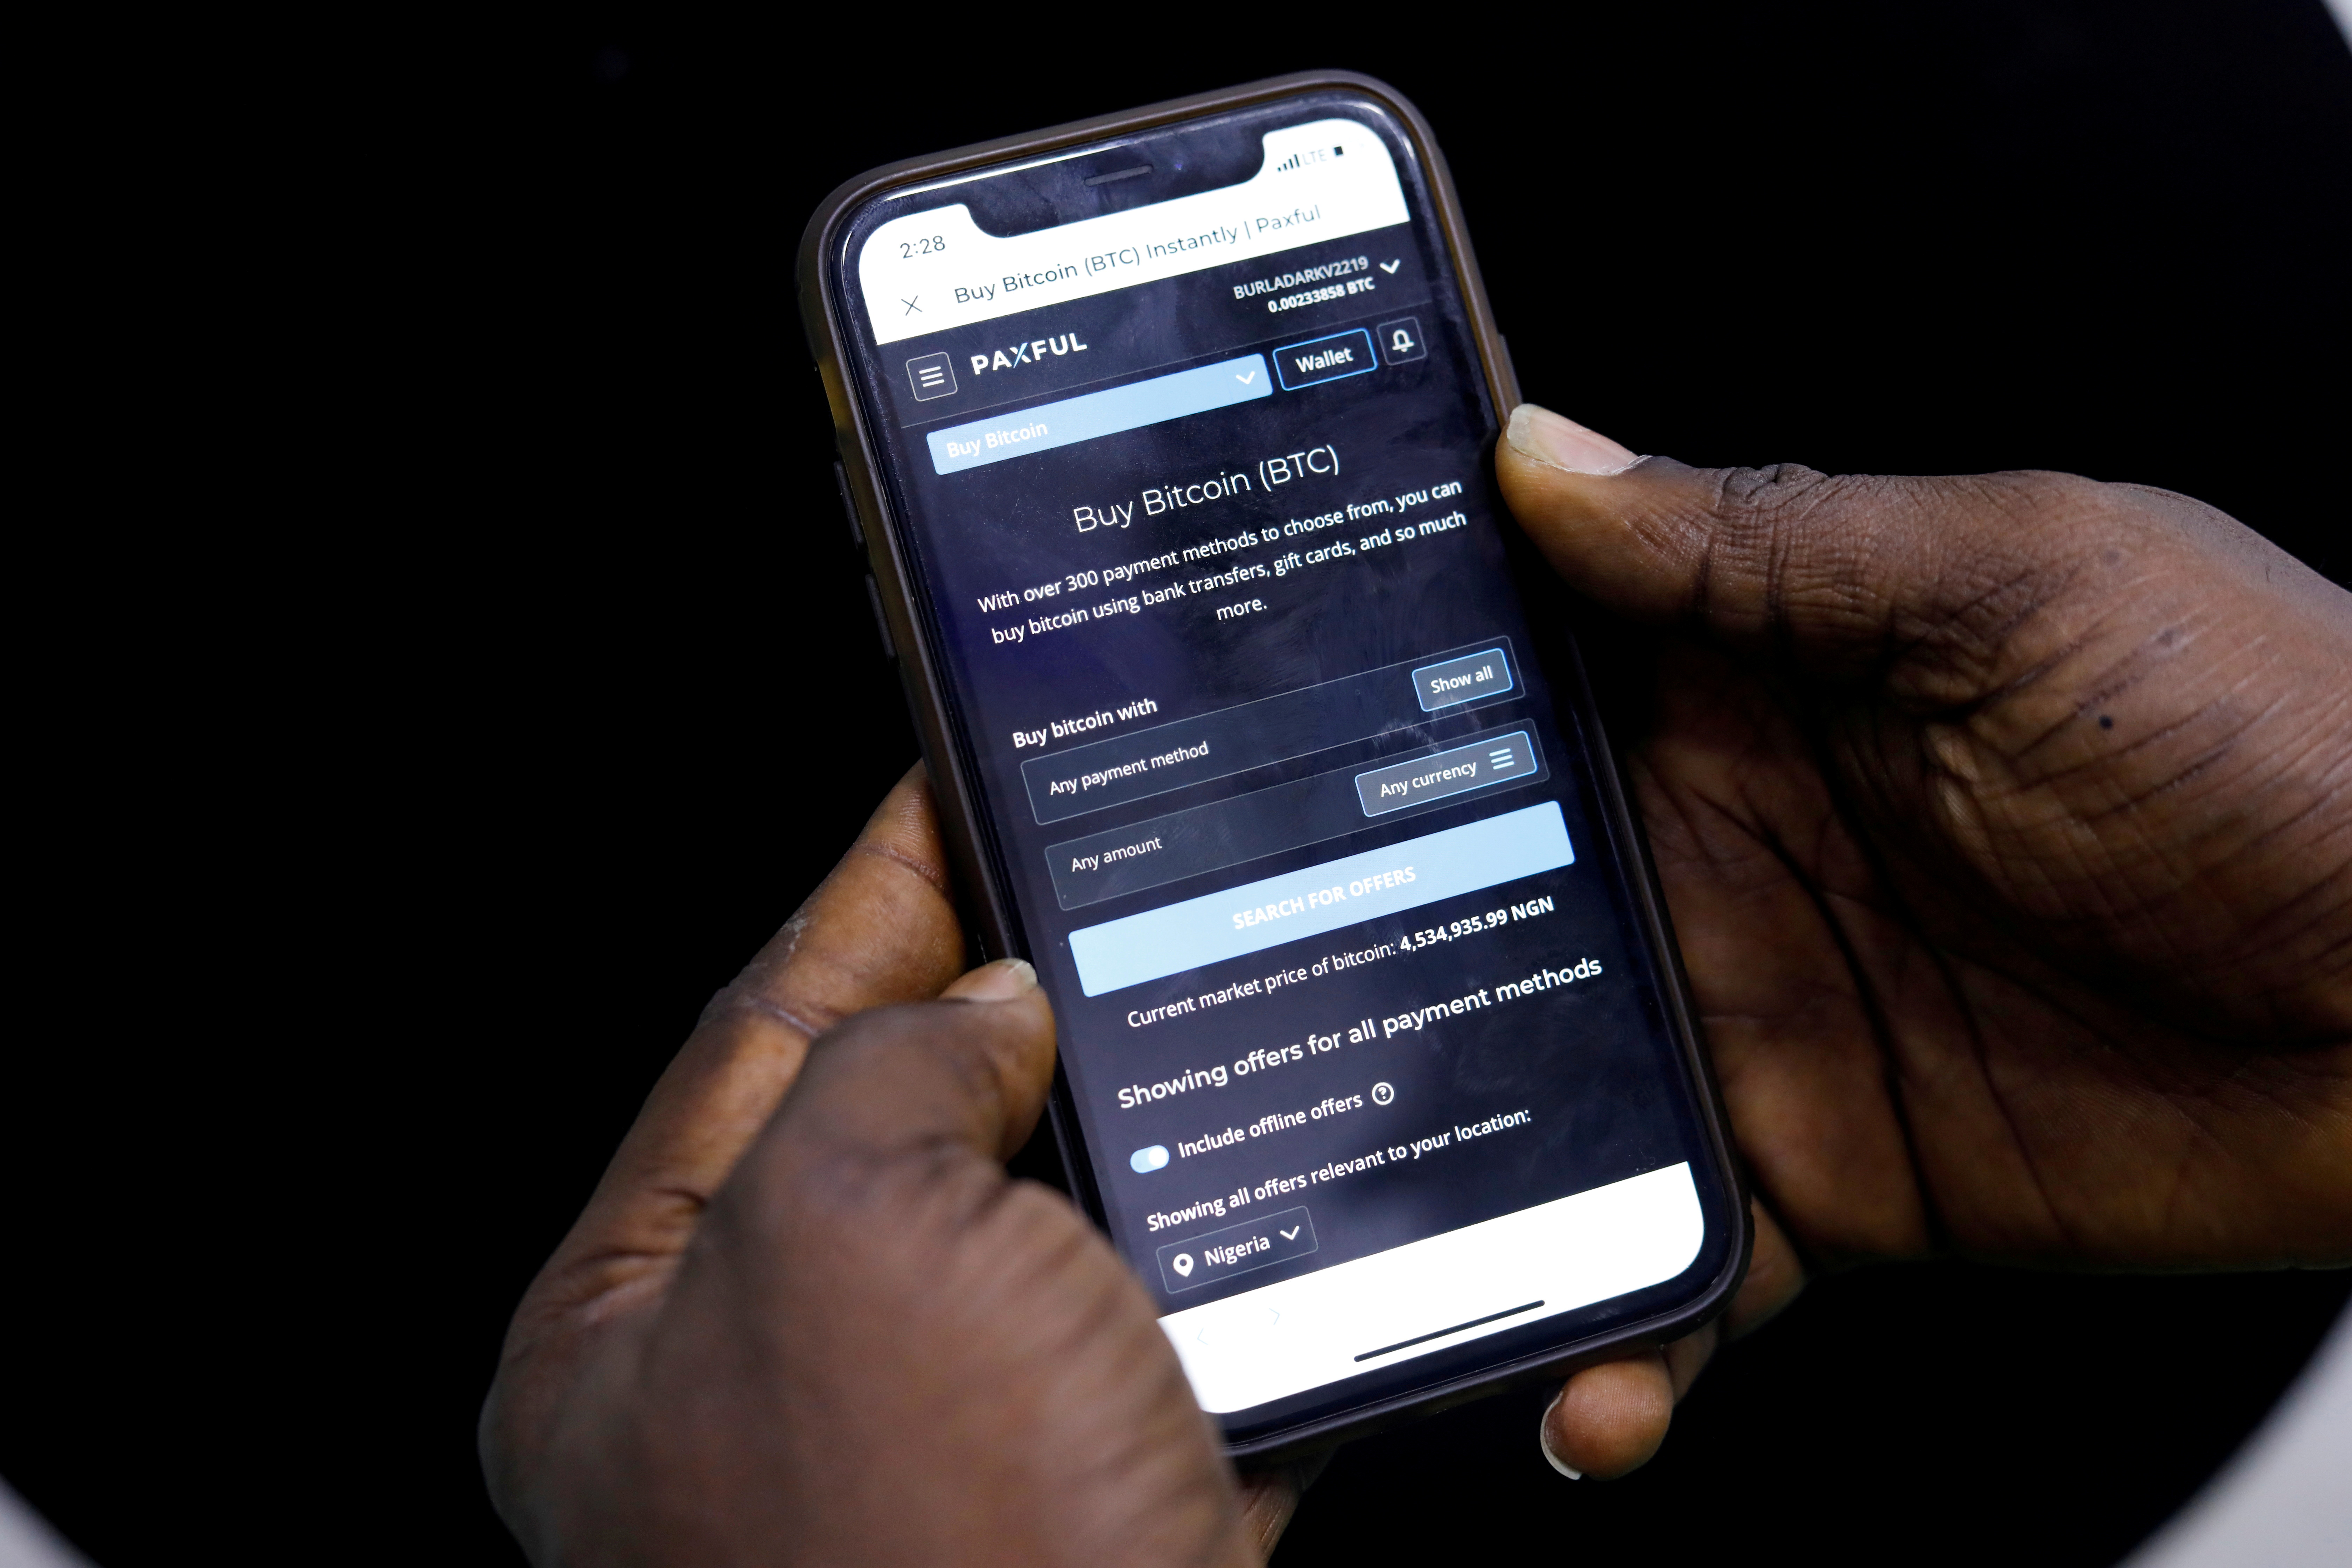 Abolaji Odunjo, a gadget vendor who trades with bitcoin, demonstrates a bitcoin application on his mobile phone in Lagos, Nigeria August 31, 2020. REUTERS/Temilade Adelaja/File Photo